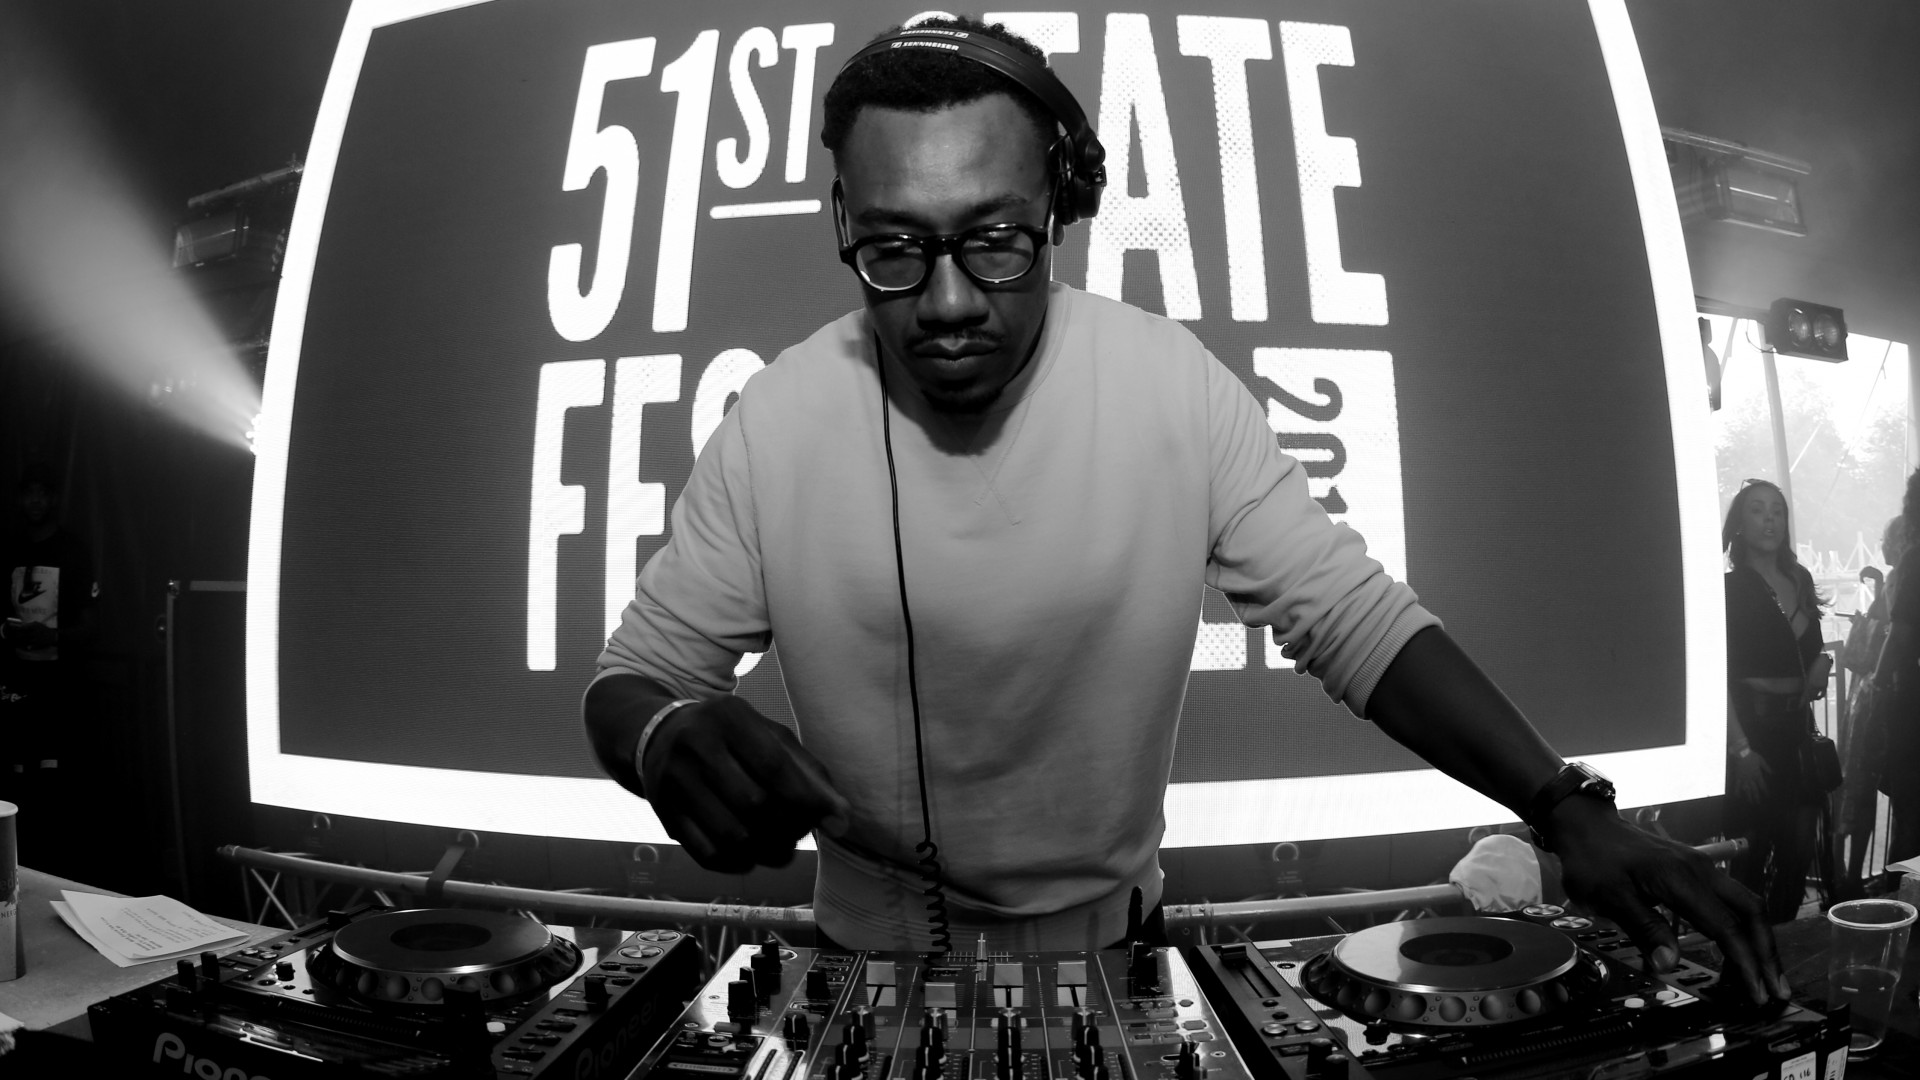 DJ at 51st State festival